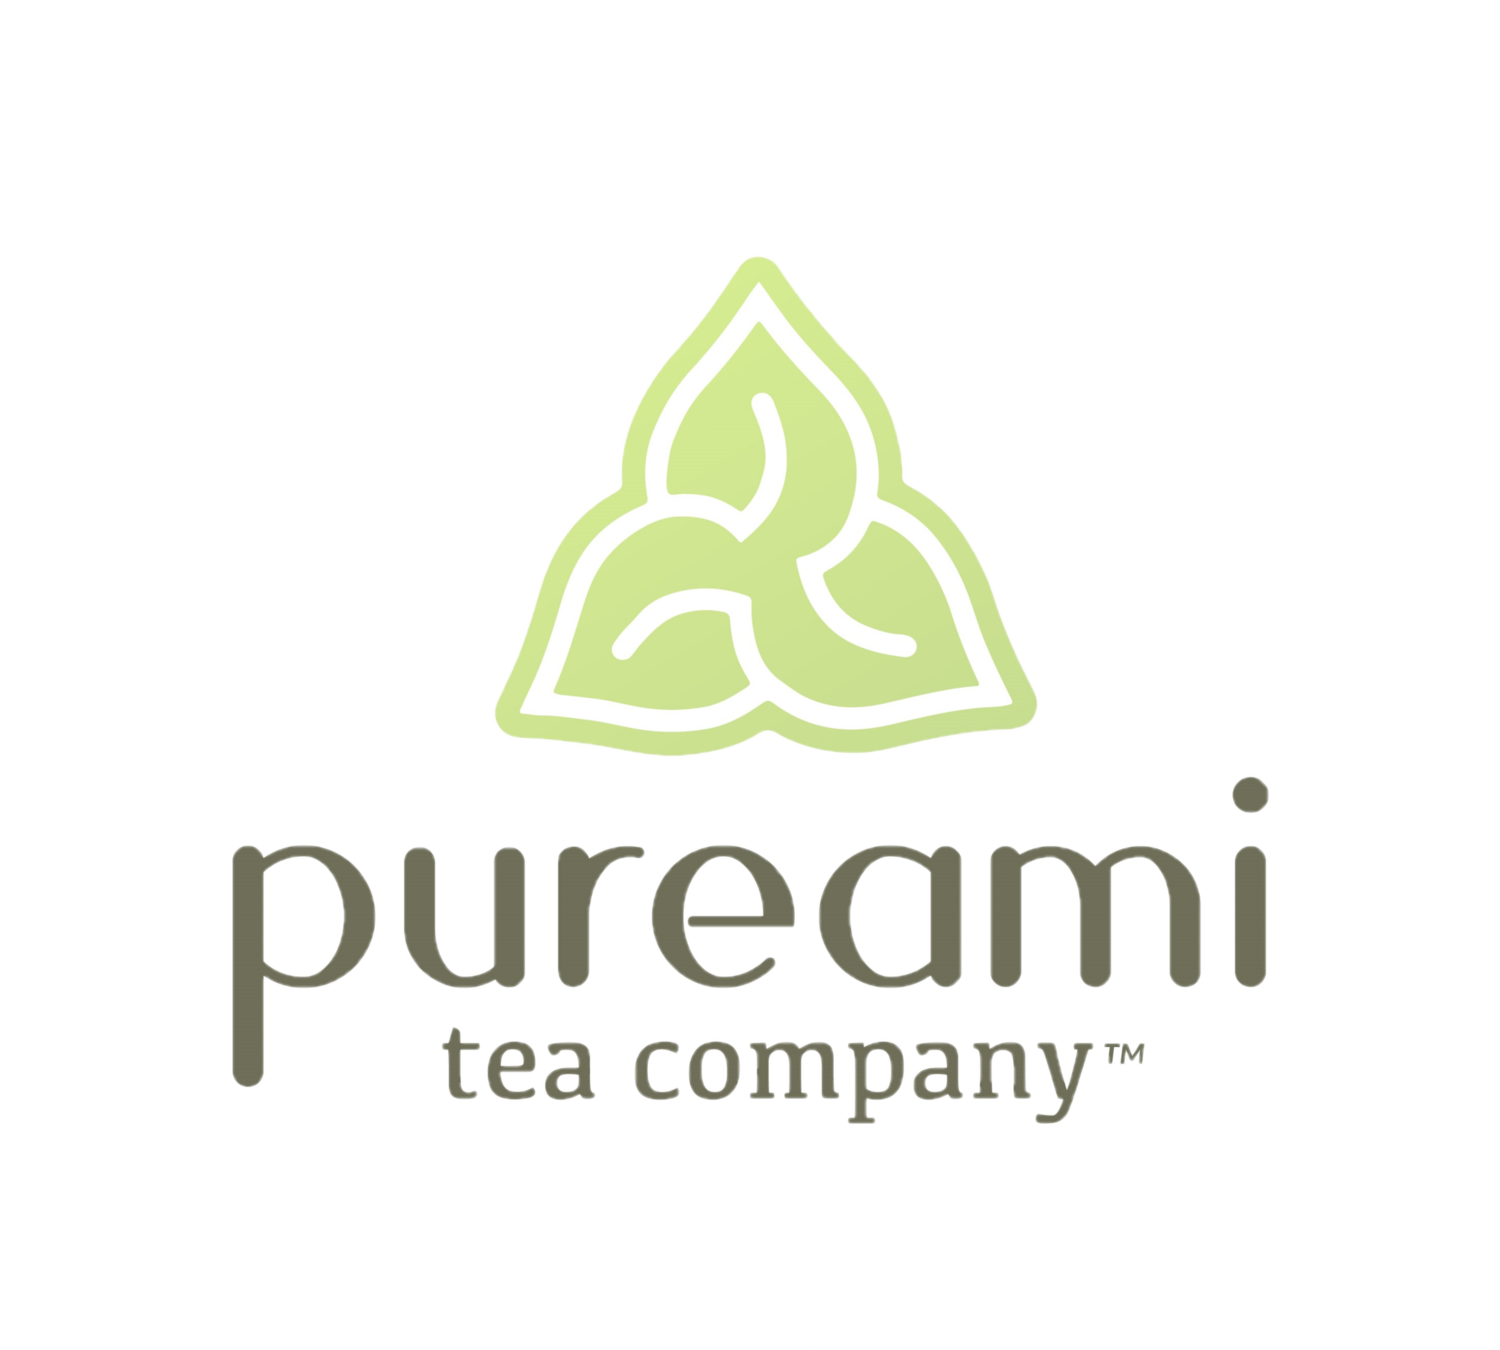 Pureami Tea Company